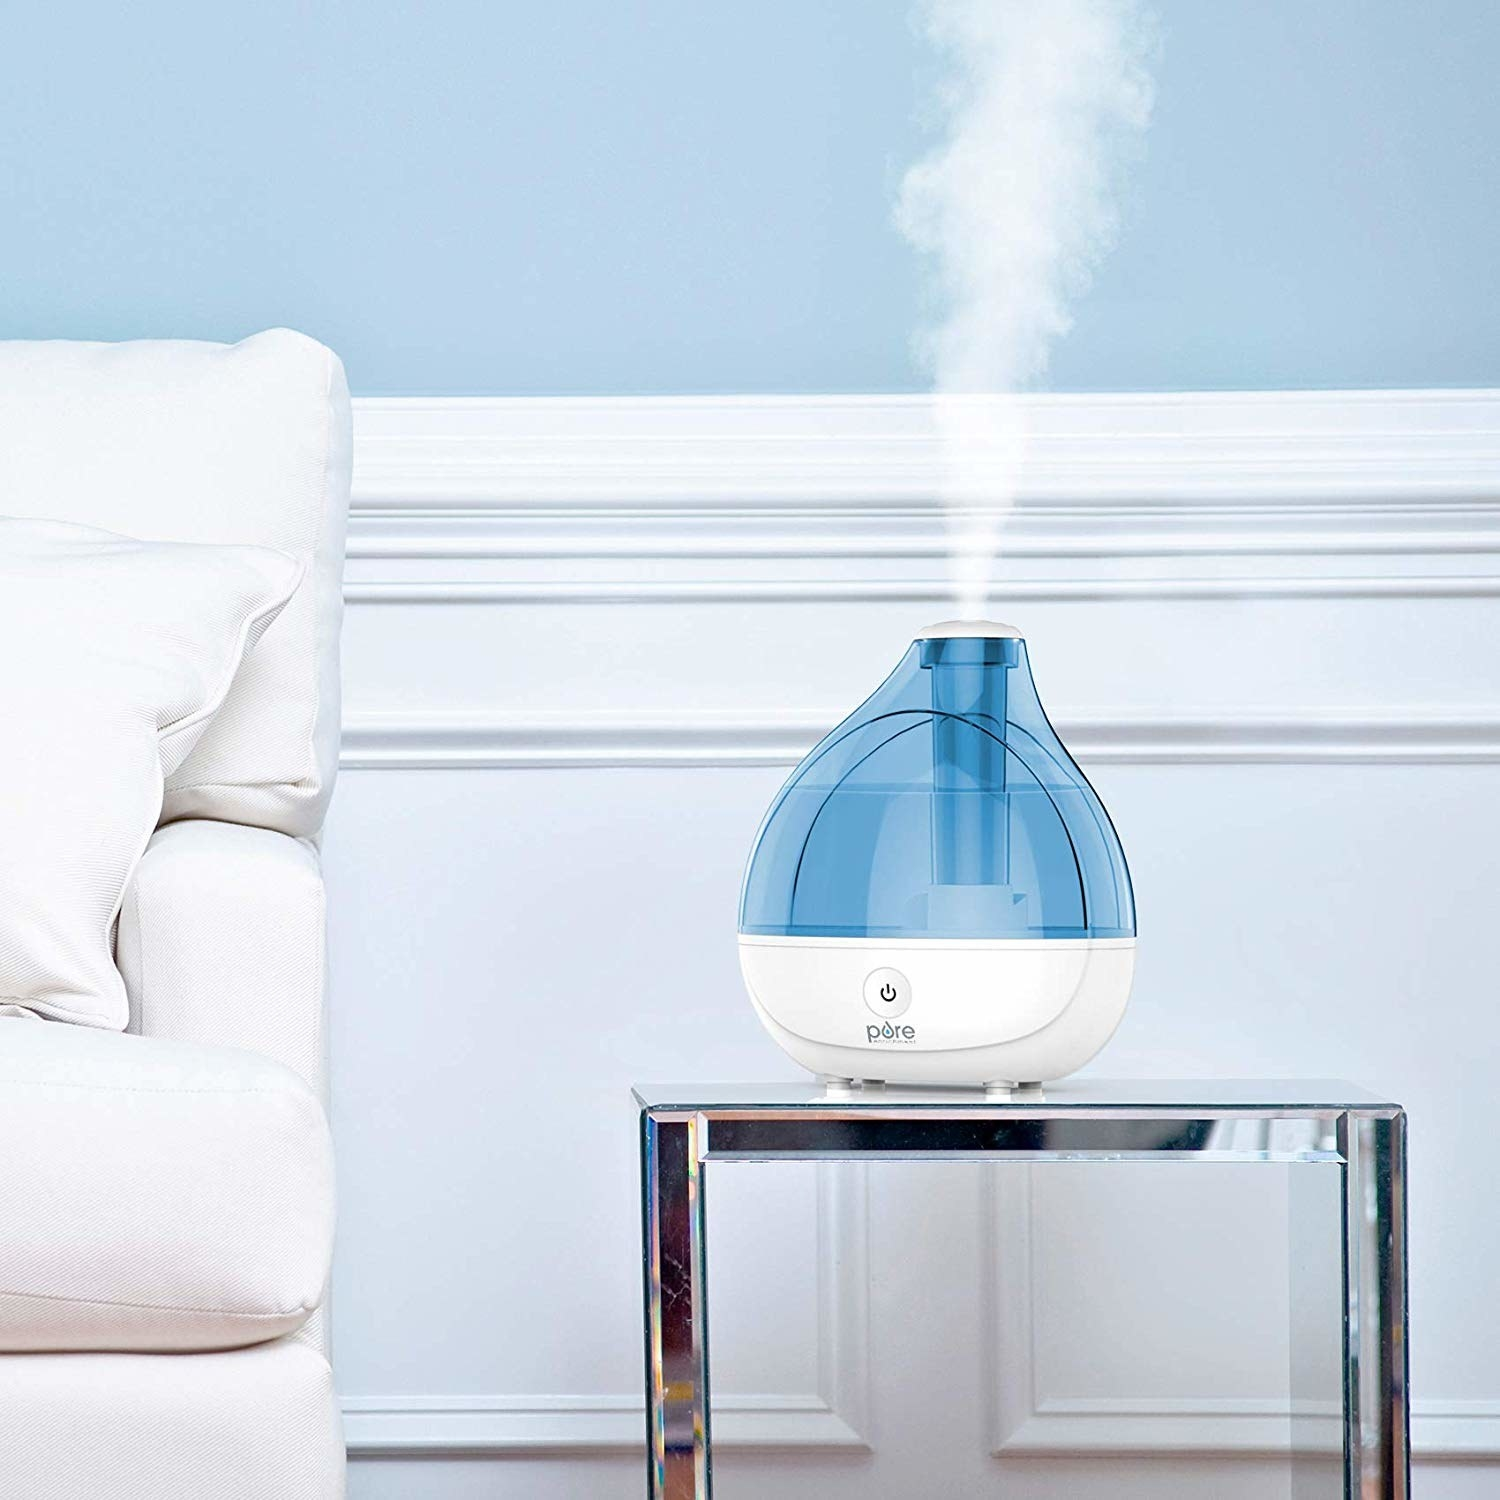 Humidifier placed on table with mist coming from the top